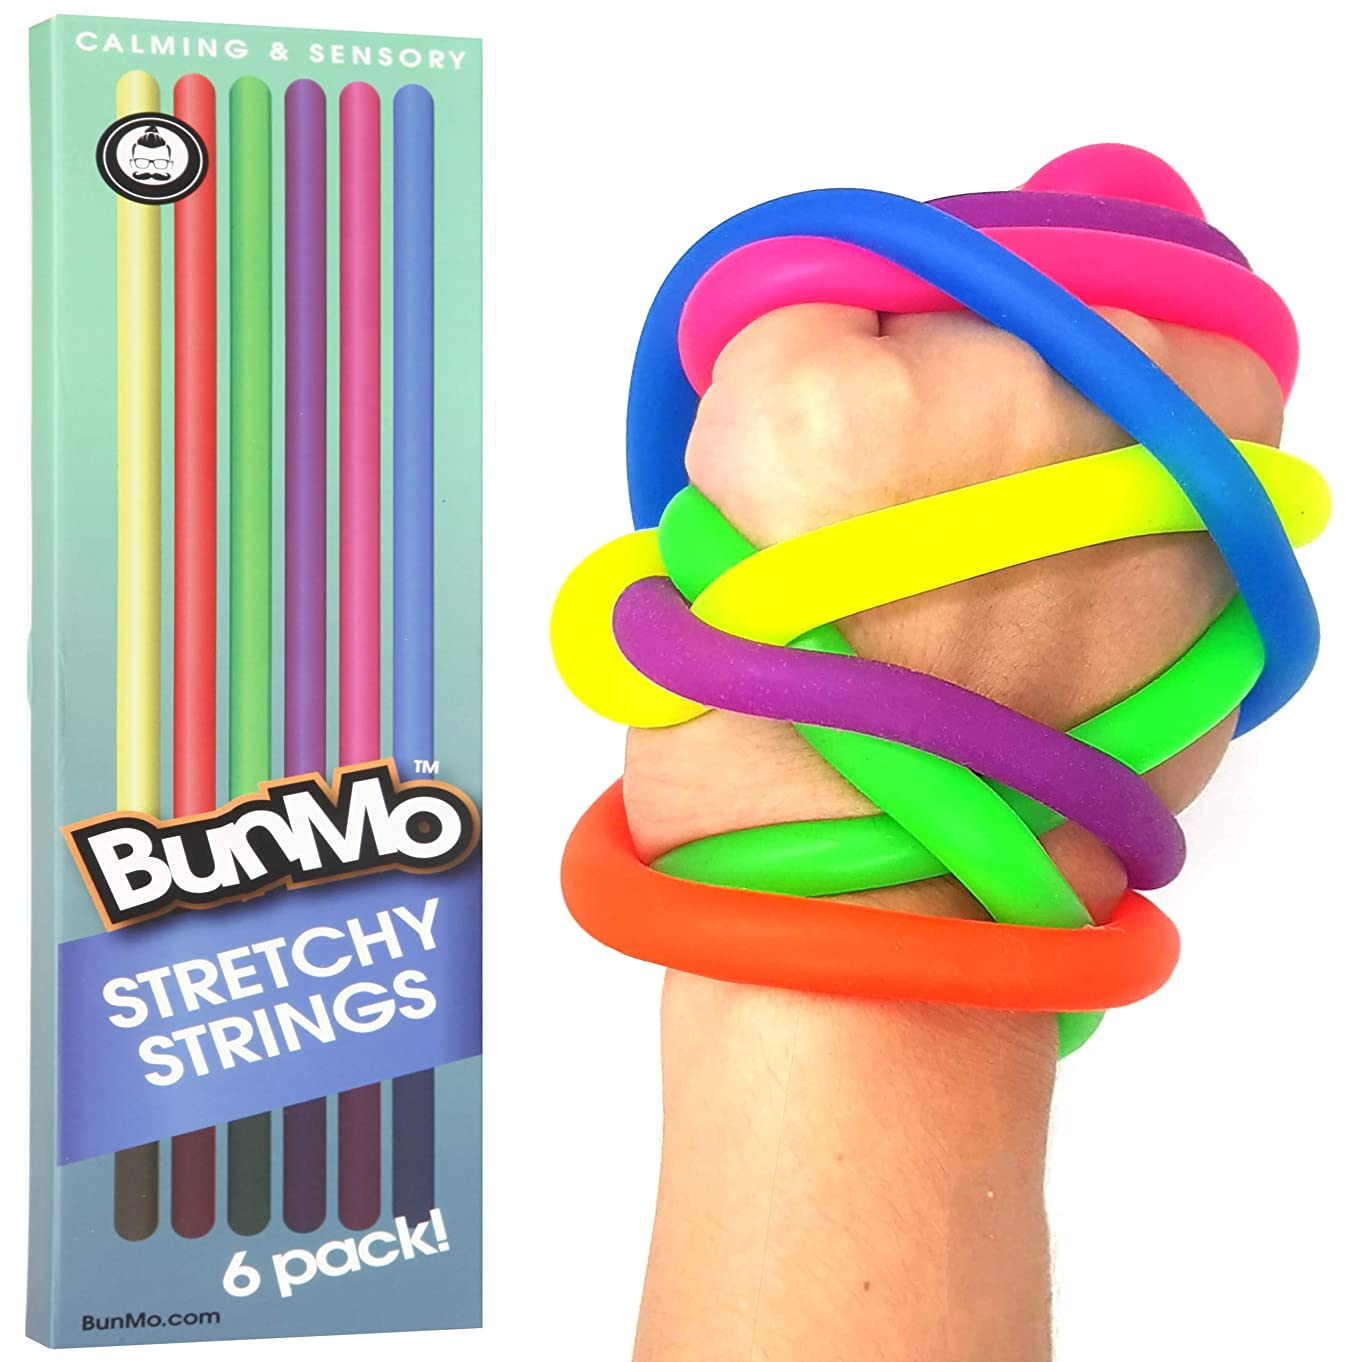 BUNMO Stress Relief Toys for Special Needs Children - Stretchy Sensory Toys for Autistic Children / ADHD / Fidgets & Anxiety Toys for Adults - 6 Pack